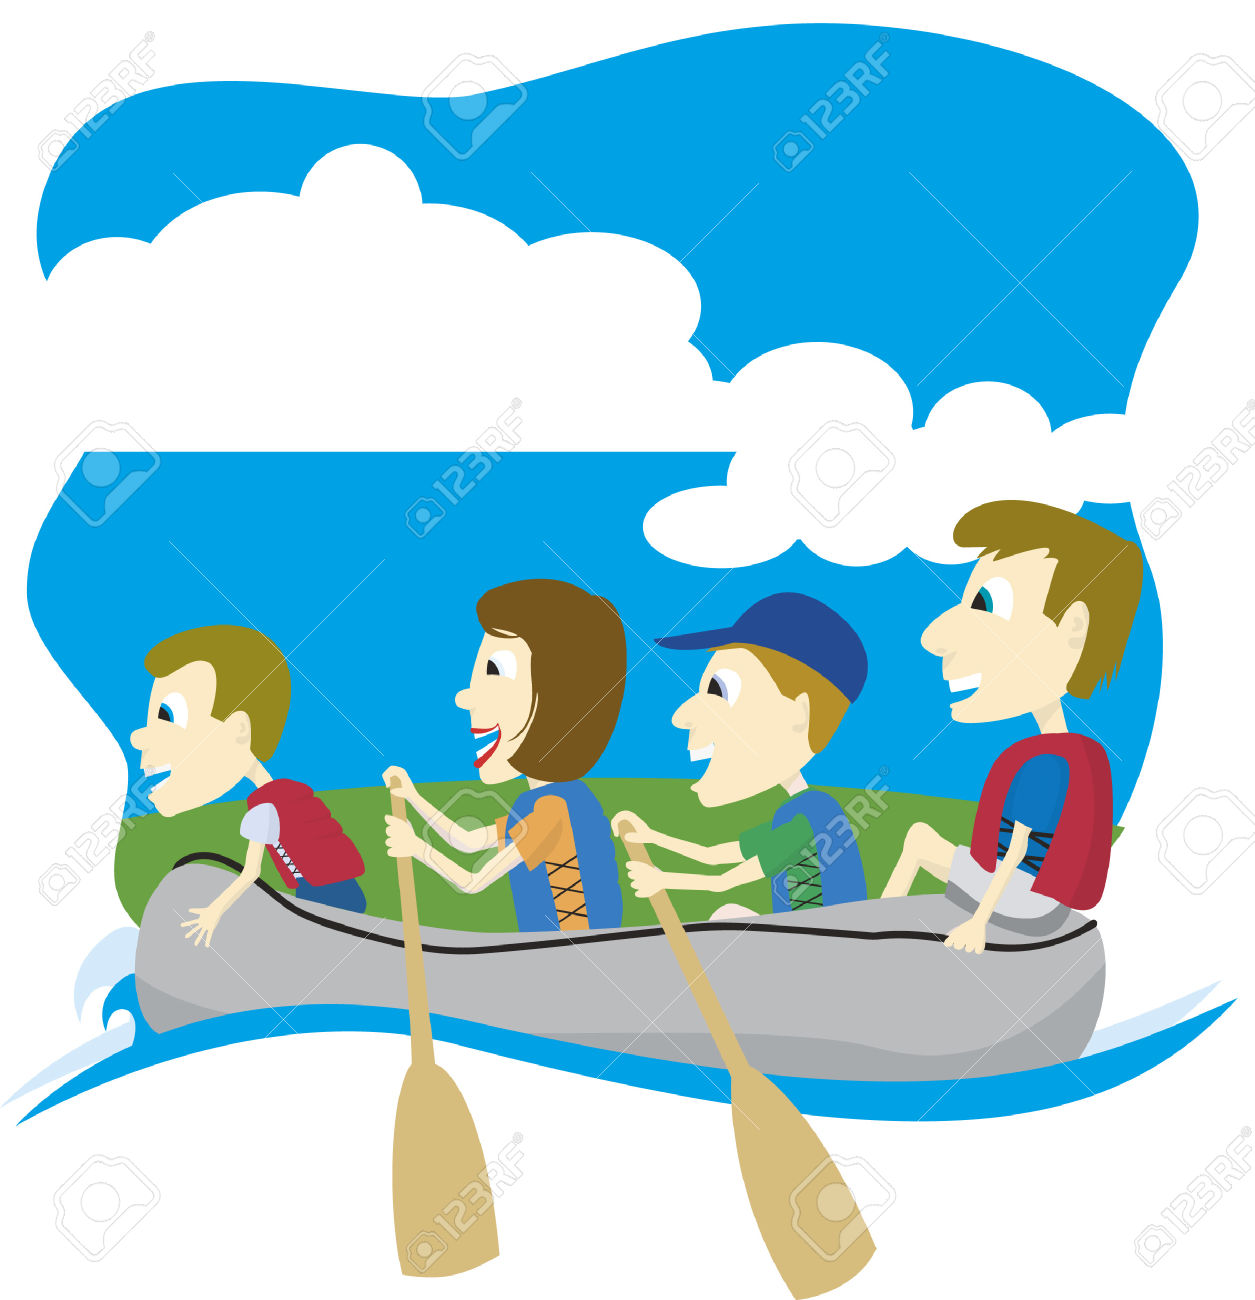 Boats clipart row boat. Family boating free collection